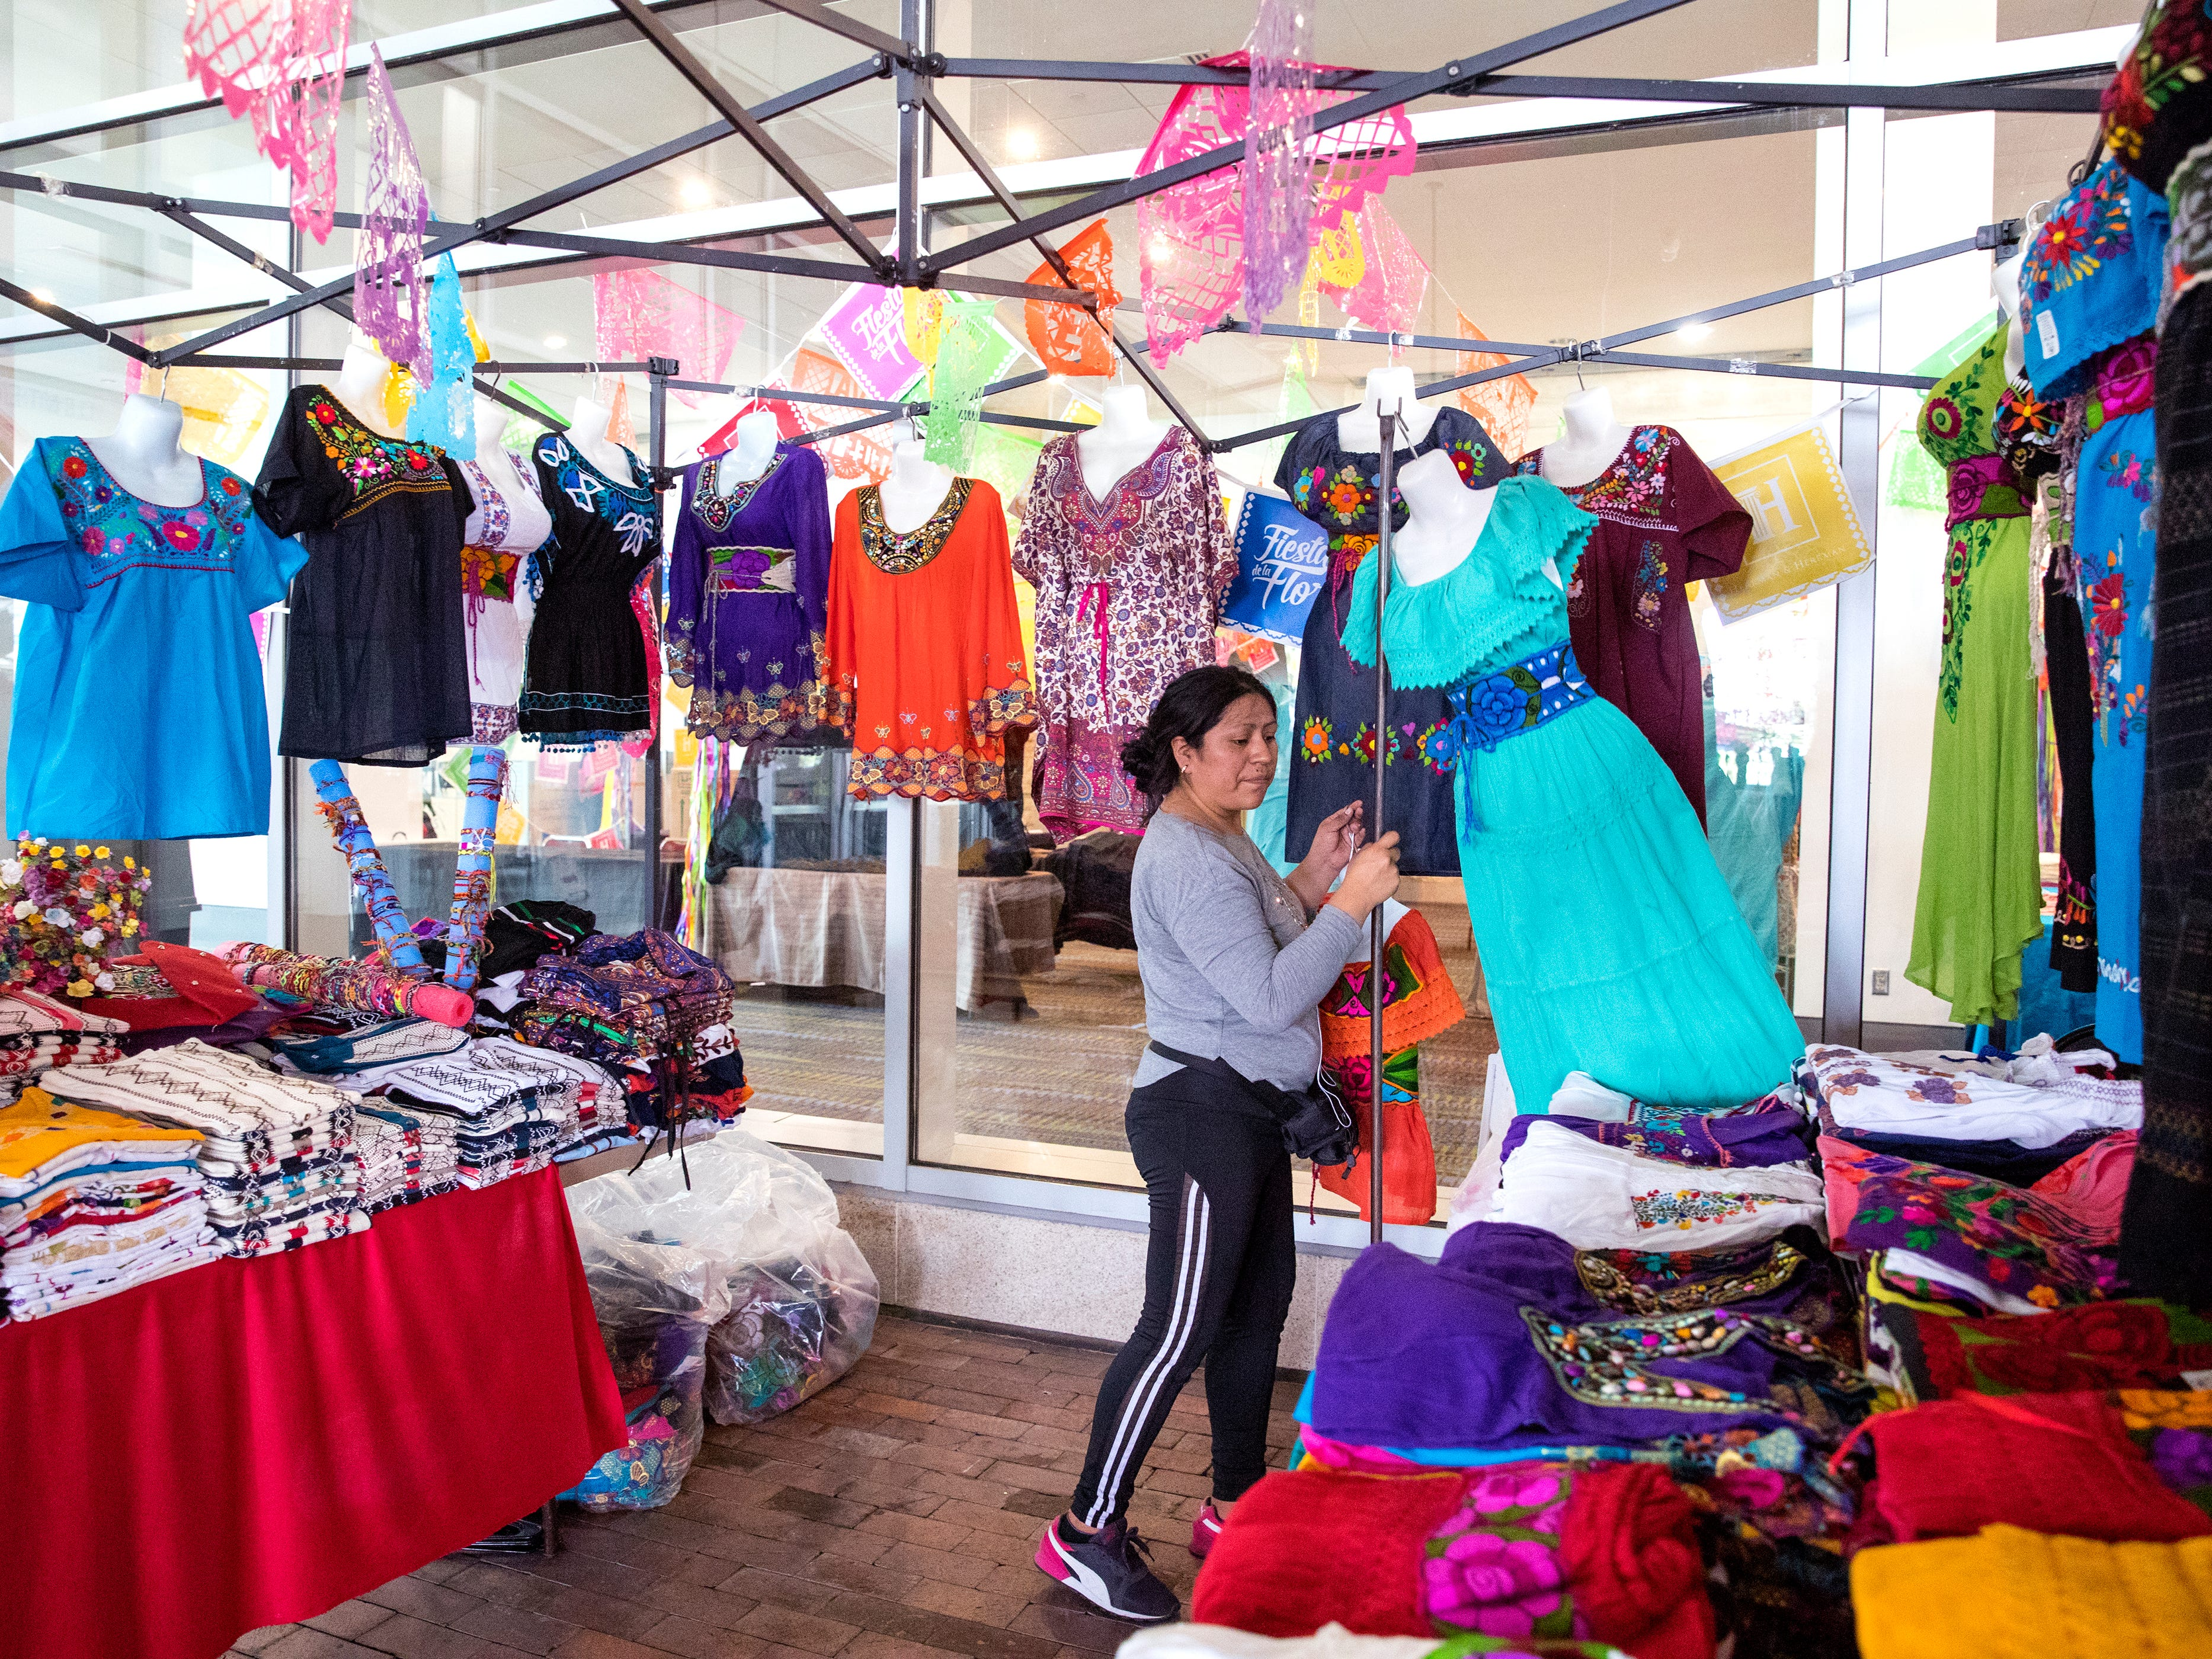 Tarina Diaz sets up her booth in The Mercado in the American Bank Center before Fiesta de la Flor opens on Friday, April 12, 2019. The festival is in honor of the late Tejano singer Selena Quintanilla-Perez. The two-day music event is held in Corpus Christi, Texas.